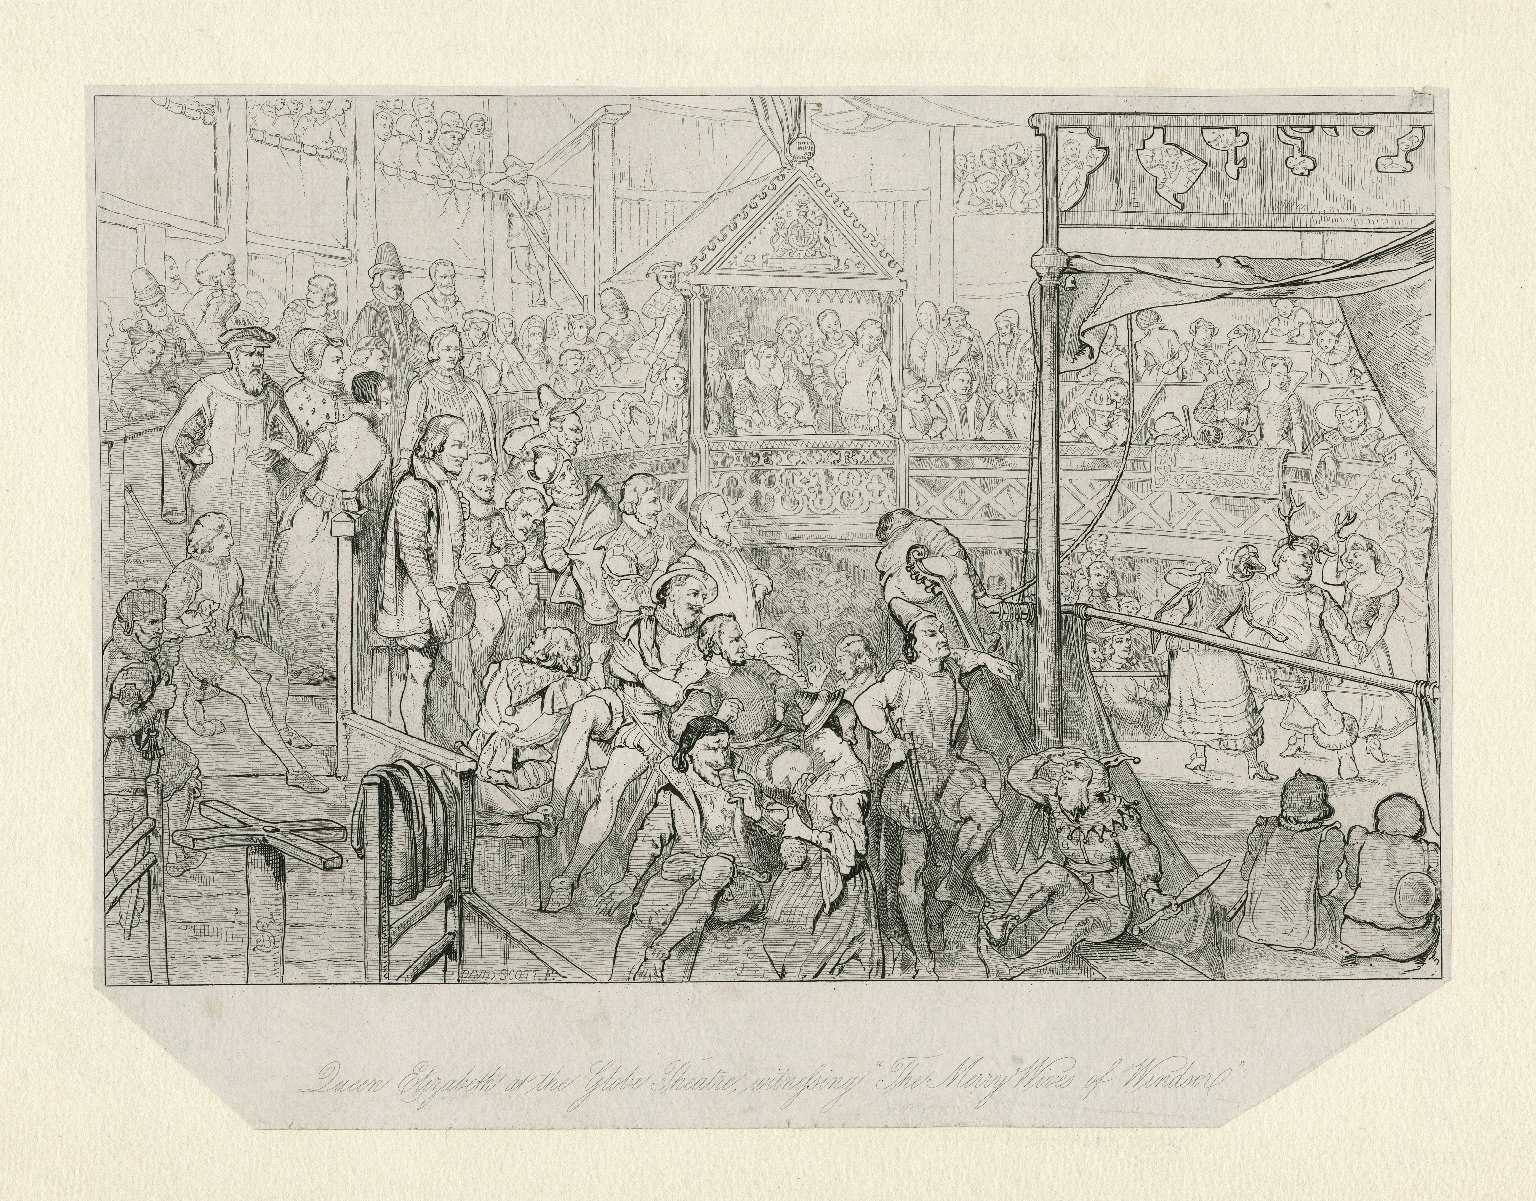 """Queen Elizabeth at the Globe Theatre witnessing """"The merry wives of Windsor"""" [graphic] / W.B.S. ; David Scott, f."""